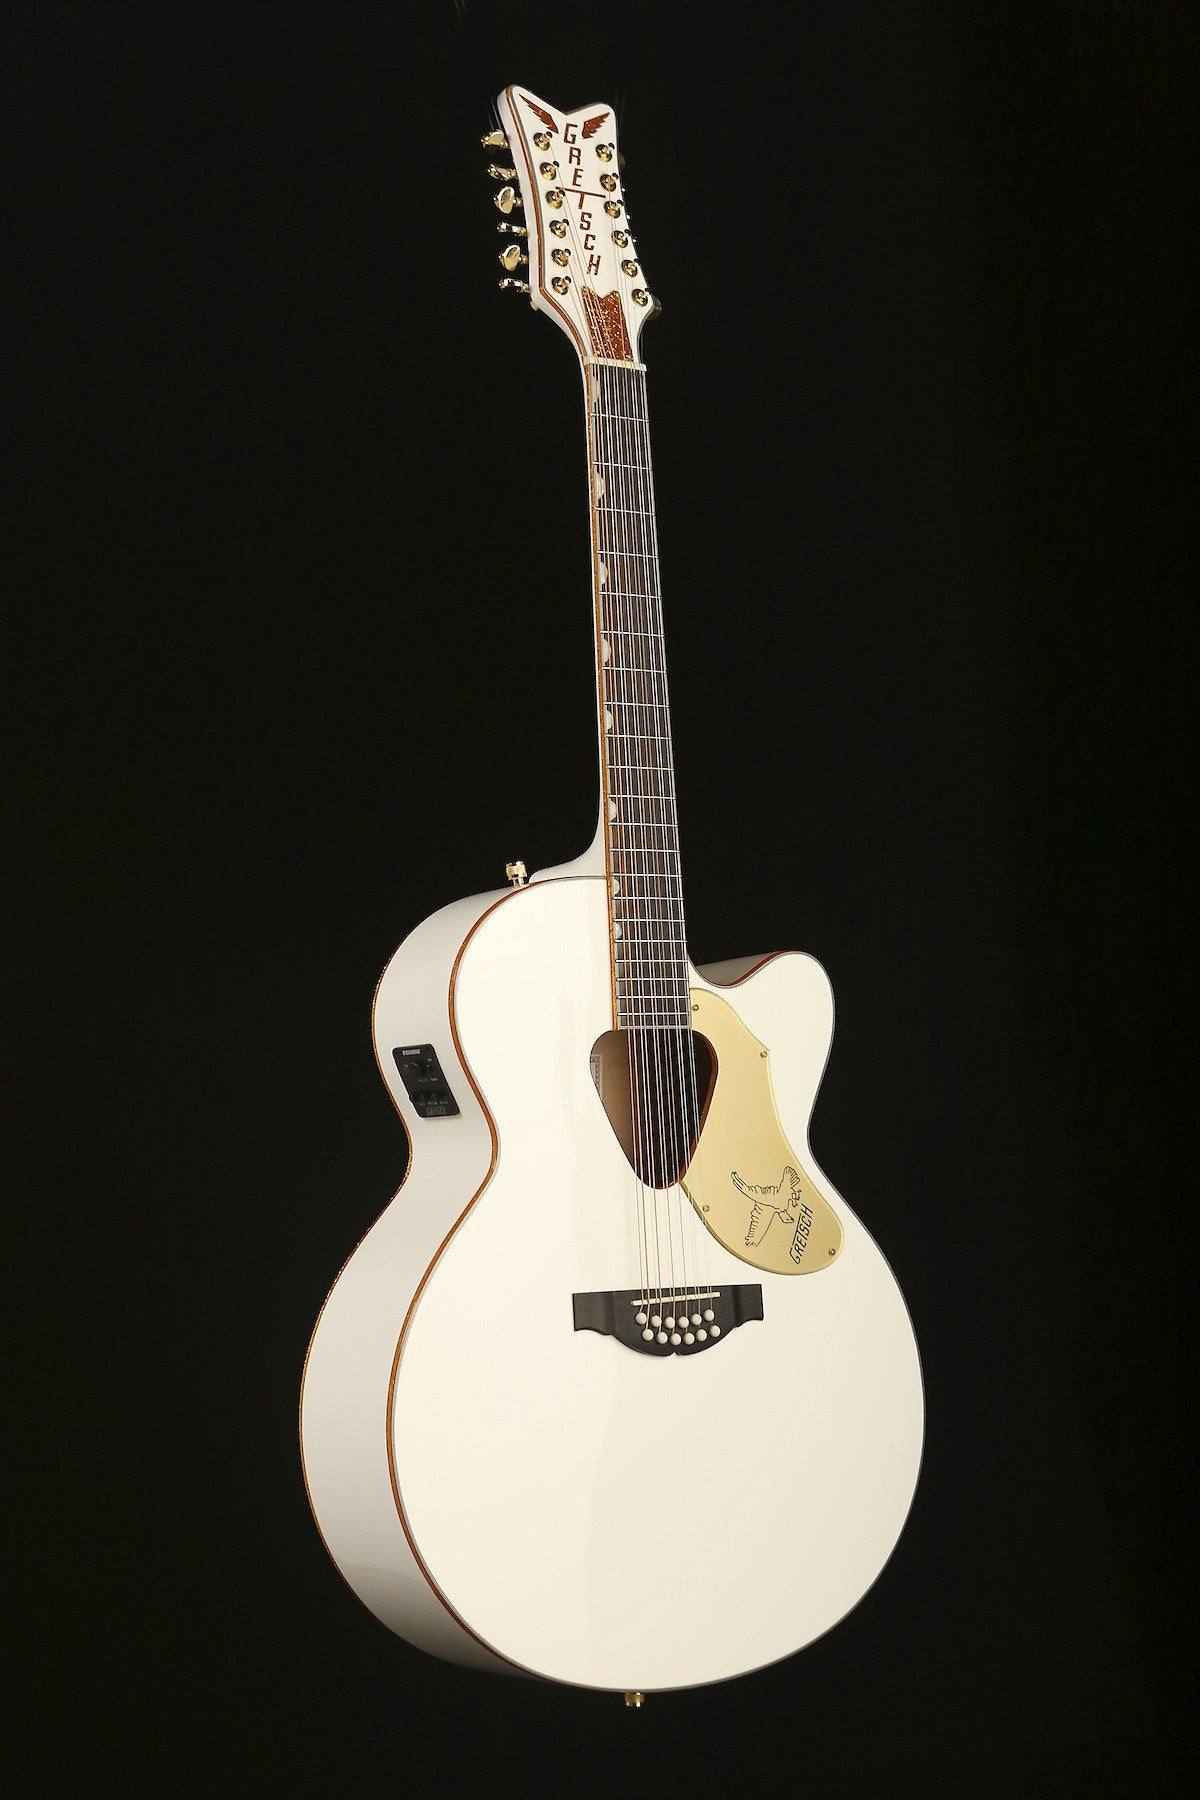 gretsch rancher white falcon 12 string g 5022cwfe acousticcentre. Black Bedroom Furniture Sets. Home Design Ideas